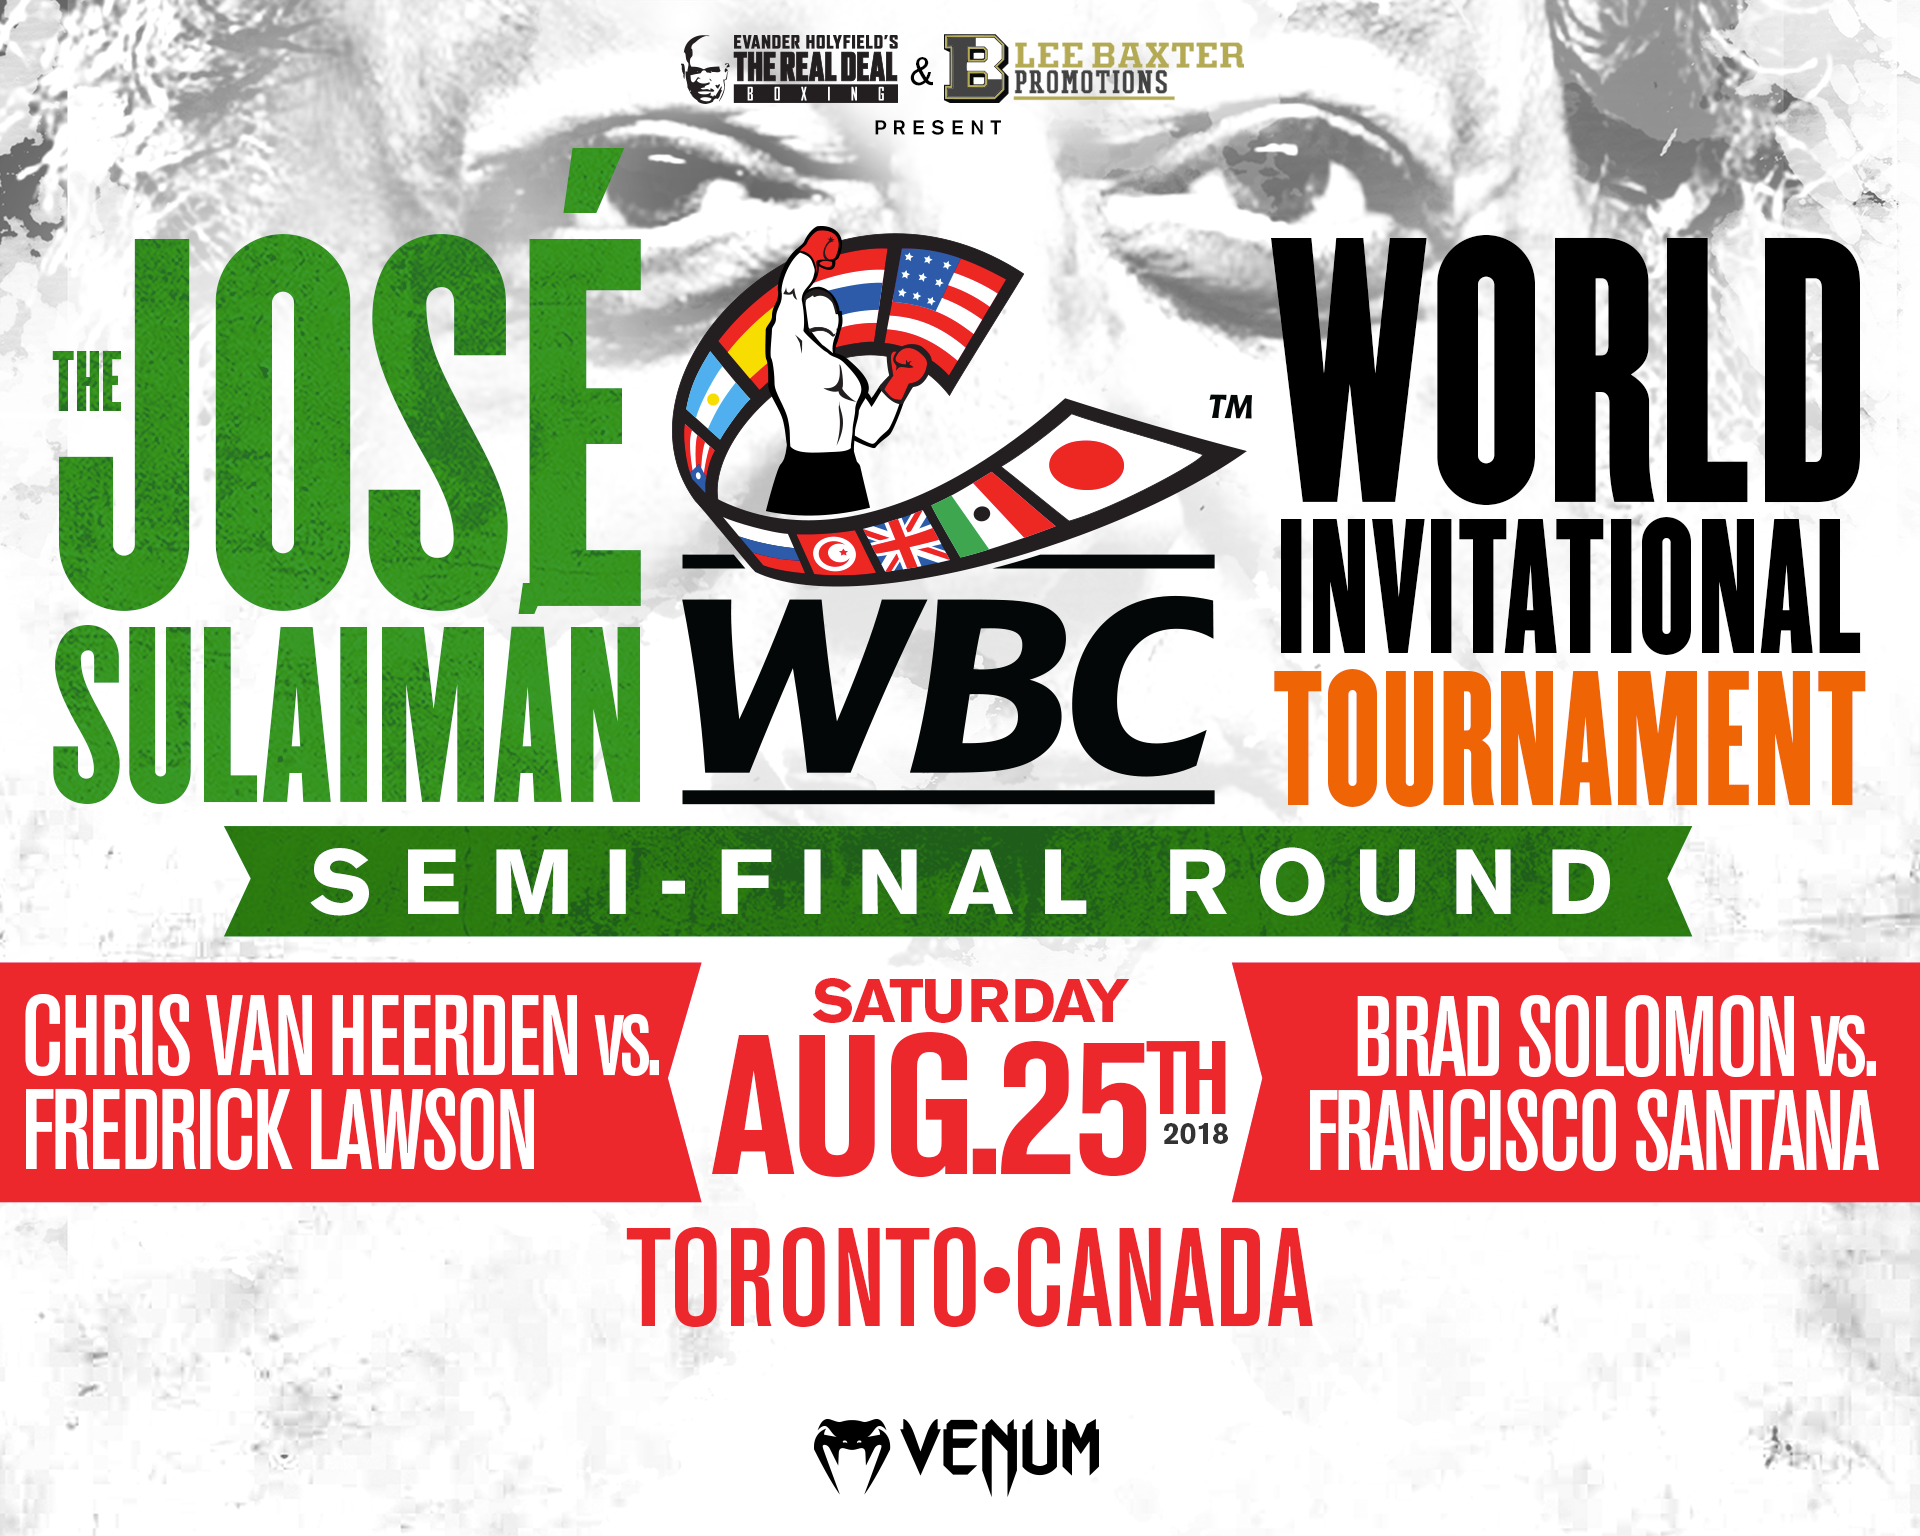 This is a flyer of the semi-final for The Jose Sulaiman World Invitational Tournament for Boxing on August 25, 2018.